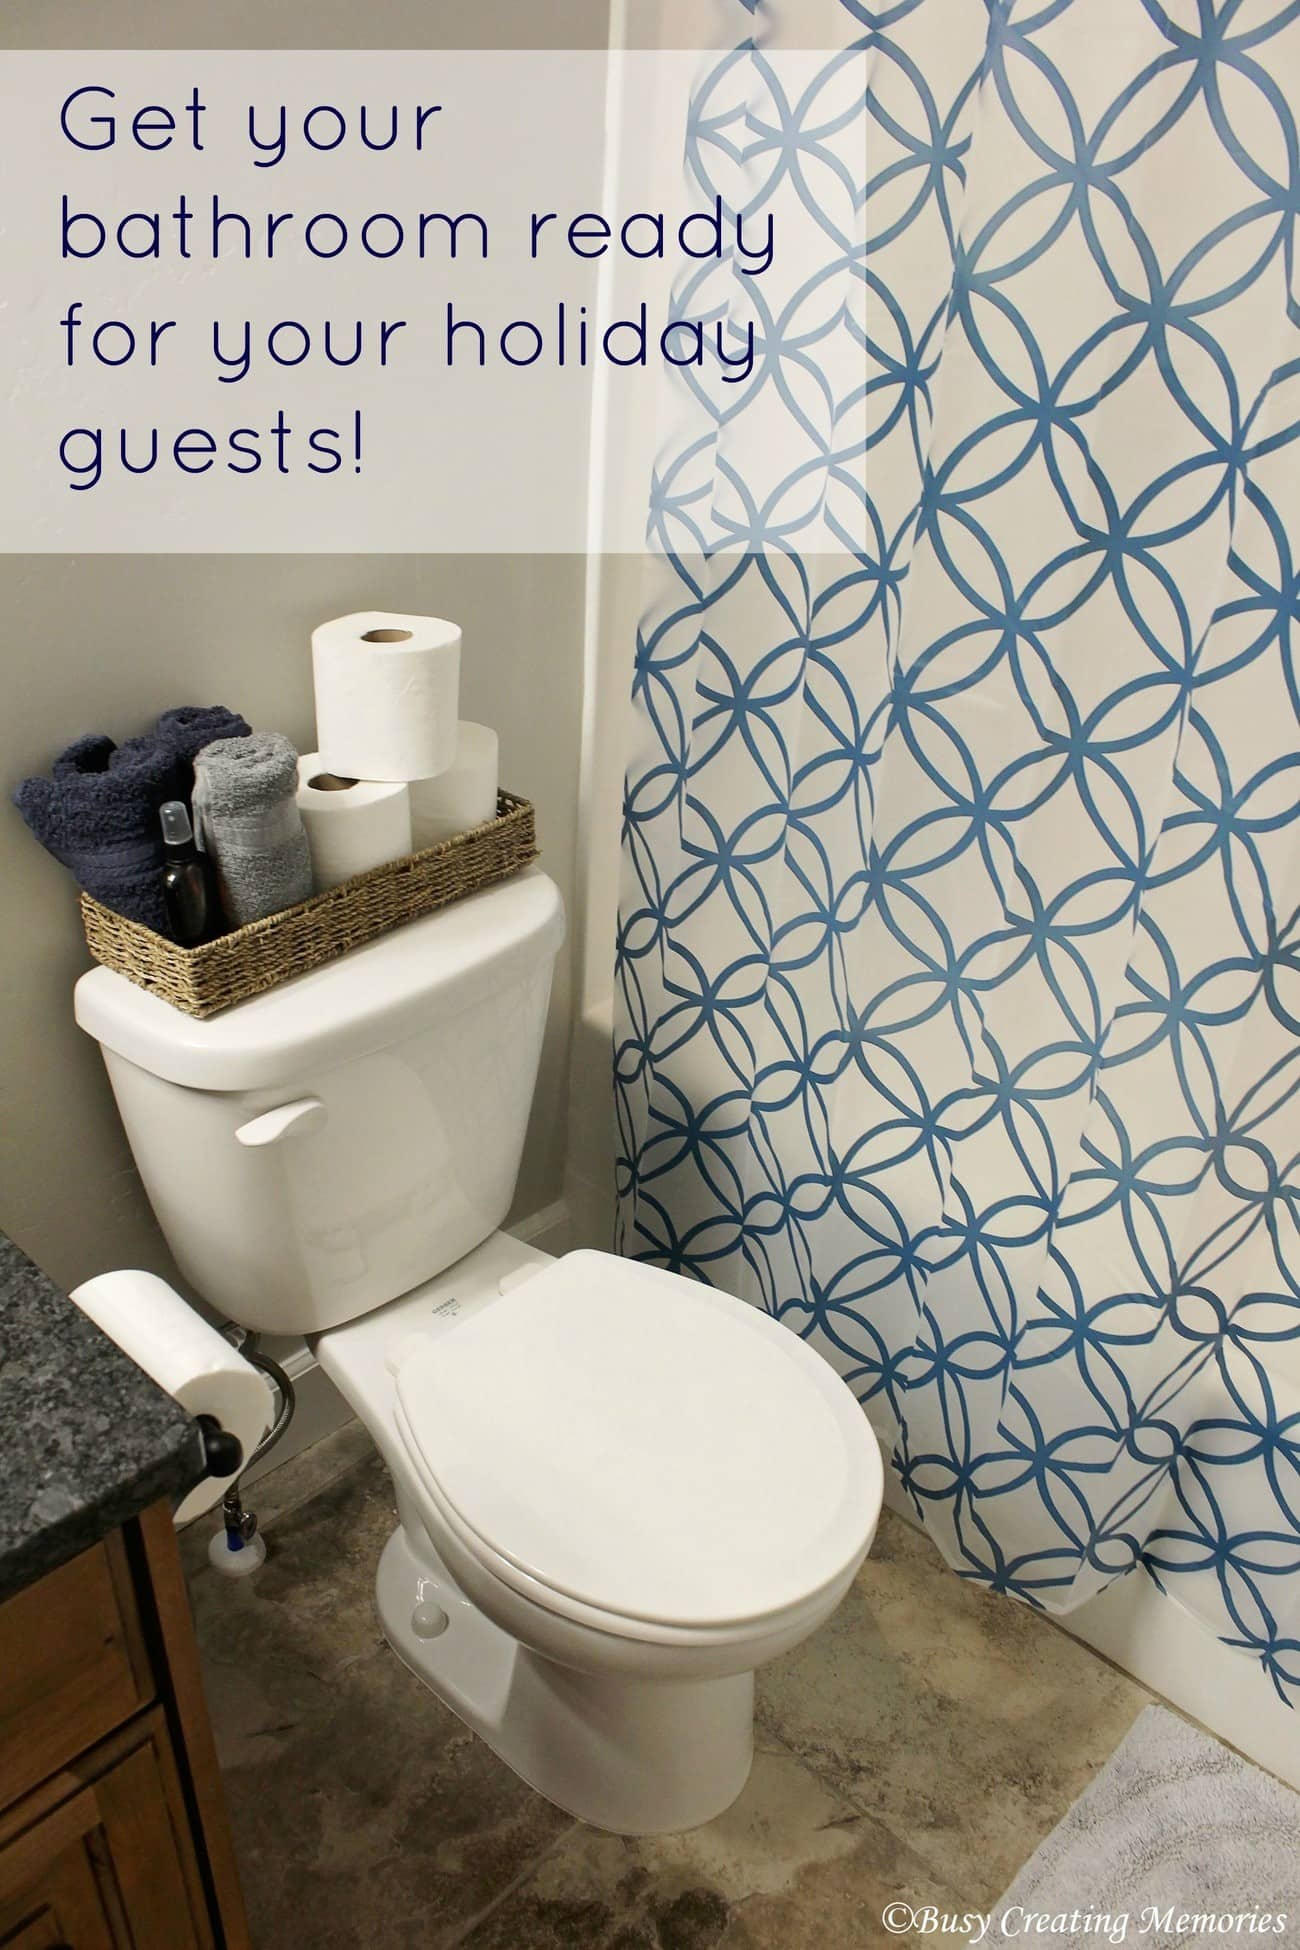 get-your-bathroom-ready-for-the-holidays-and-those-holiday-guests